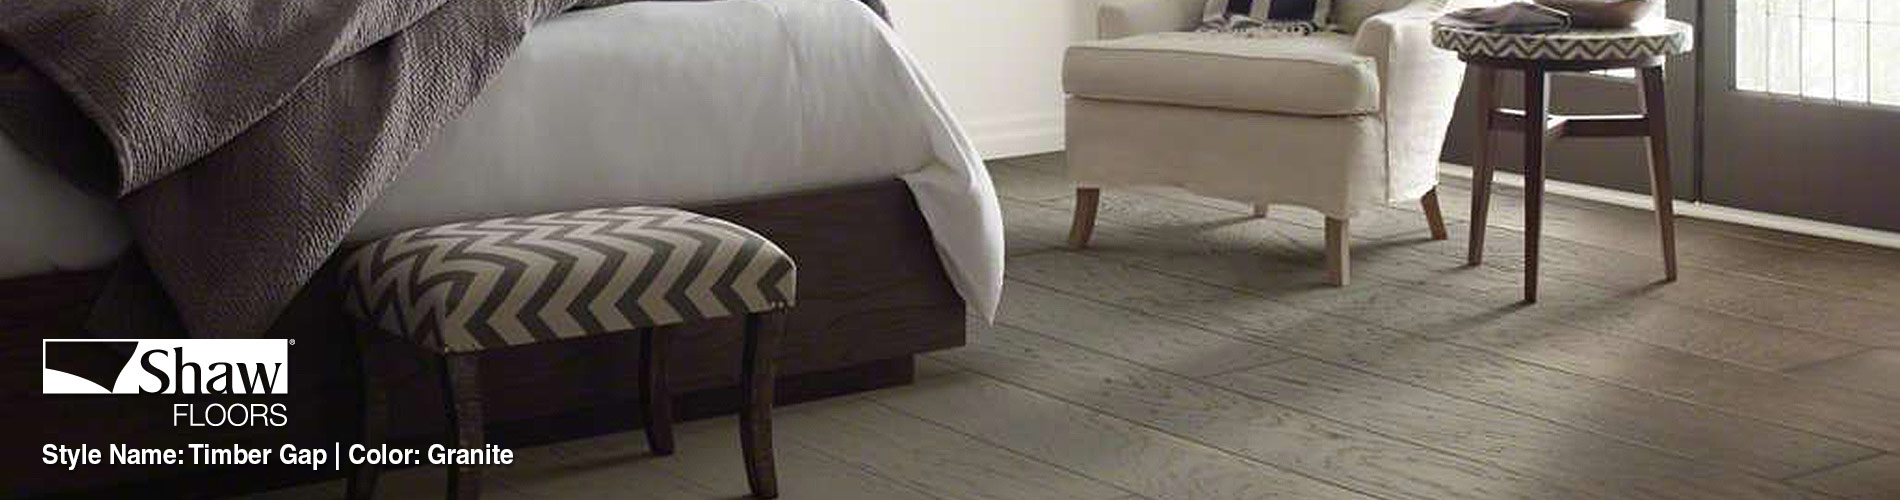 All About Floors | Loveland CO 80537 - Loveland, Co - All About Floors